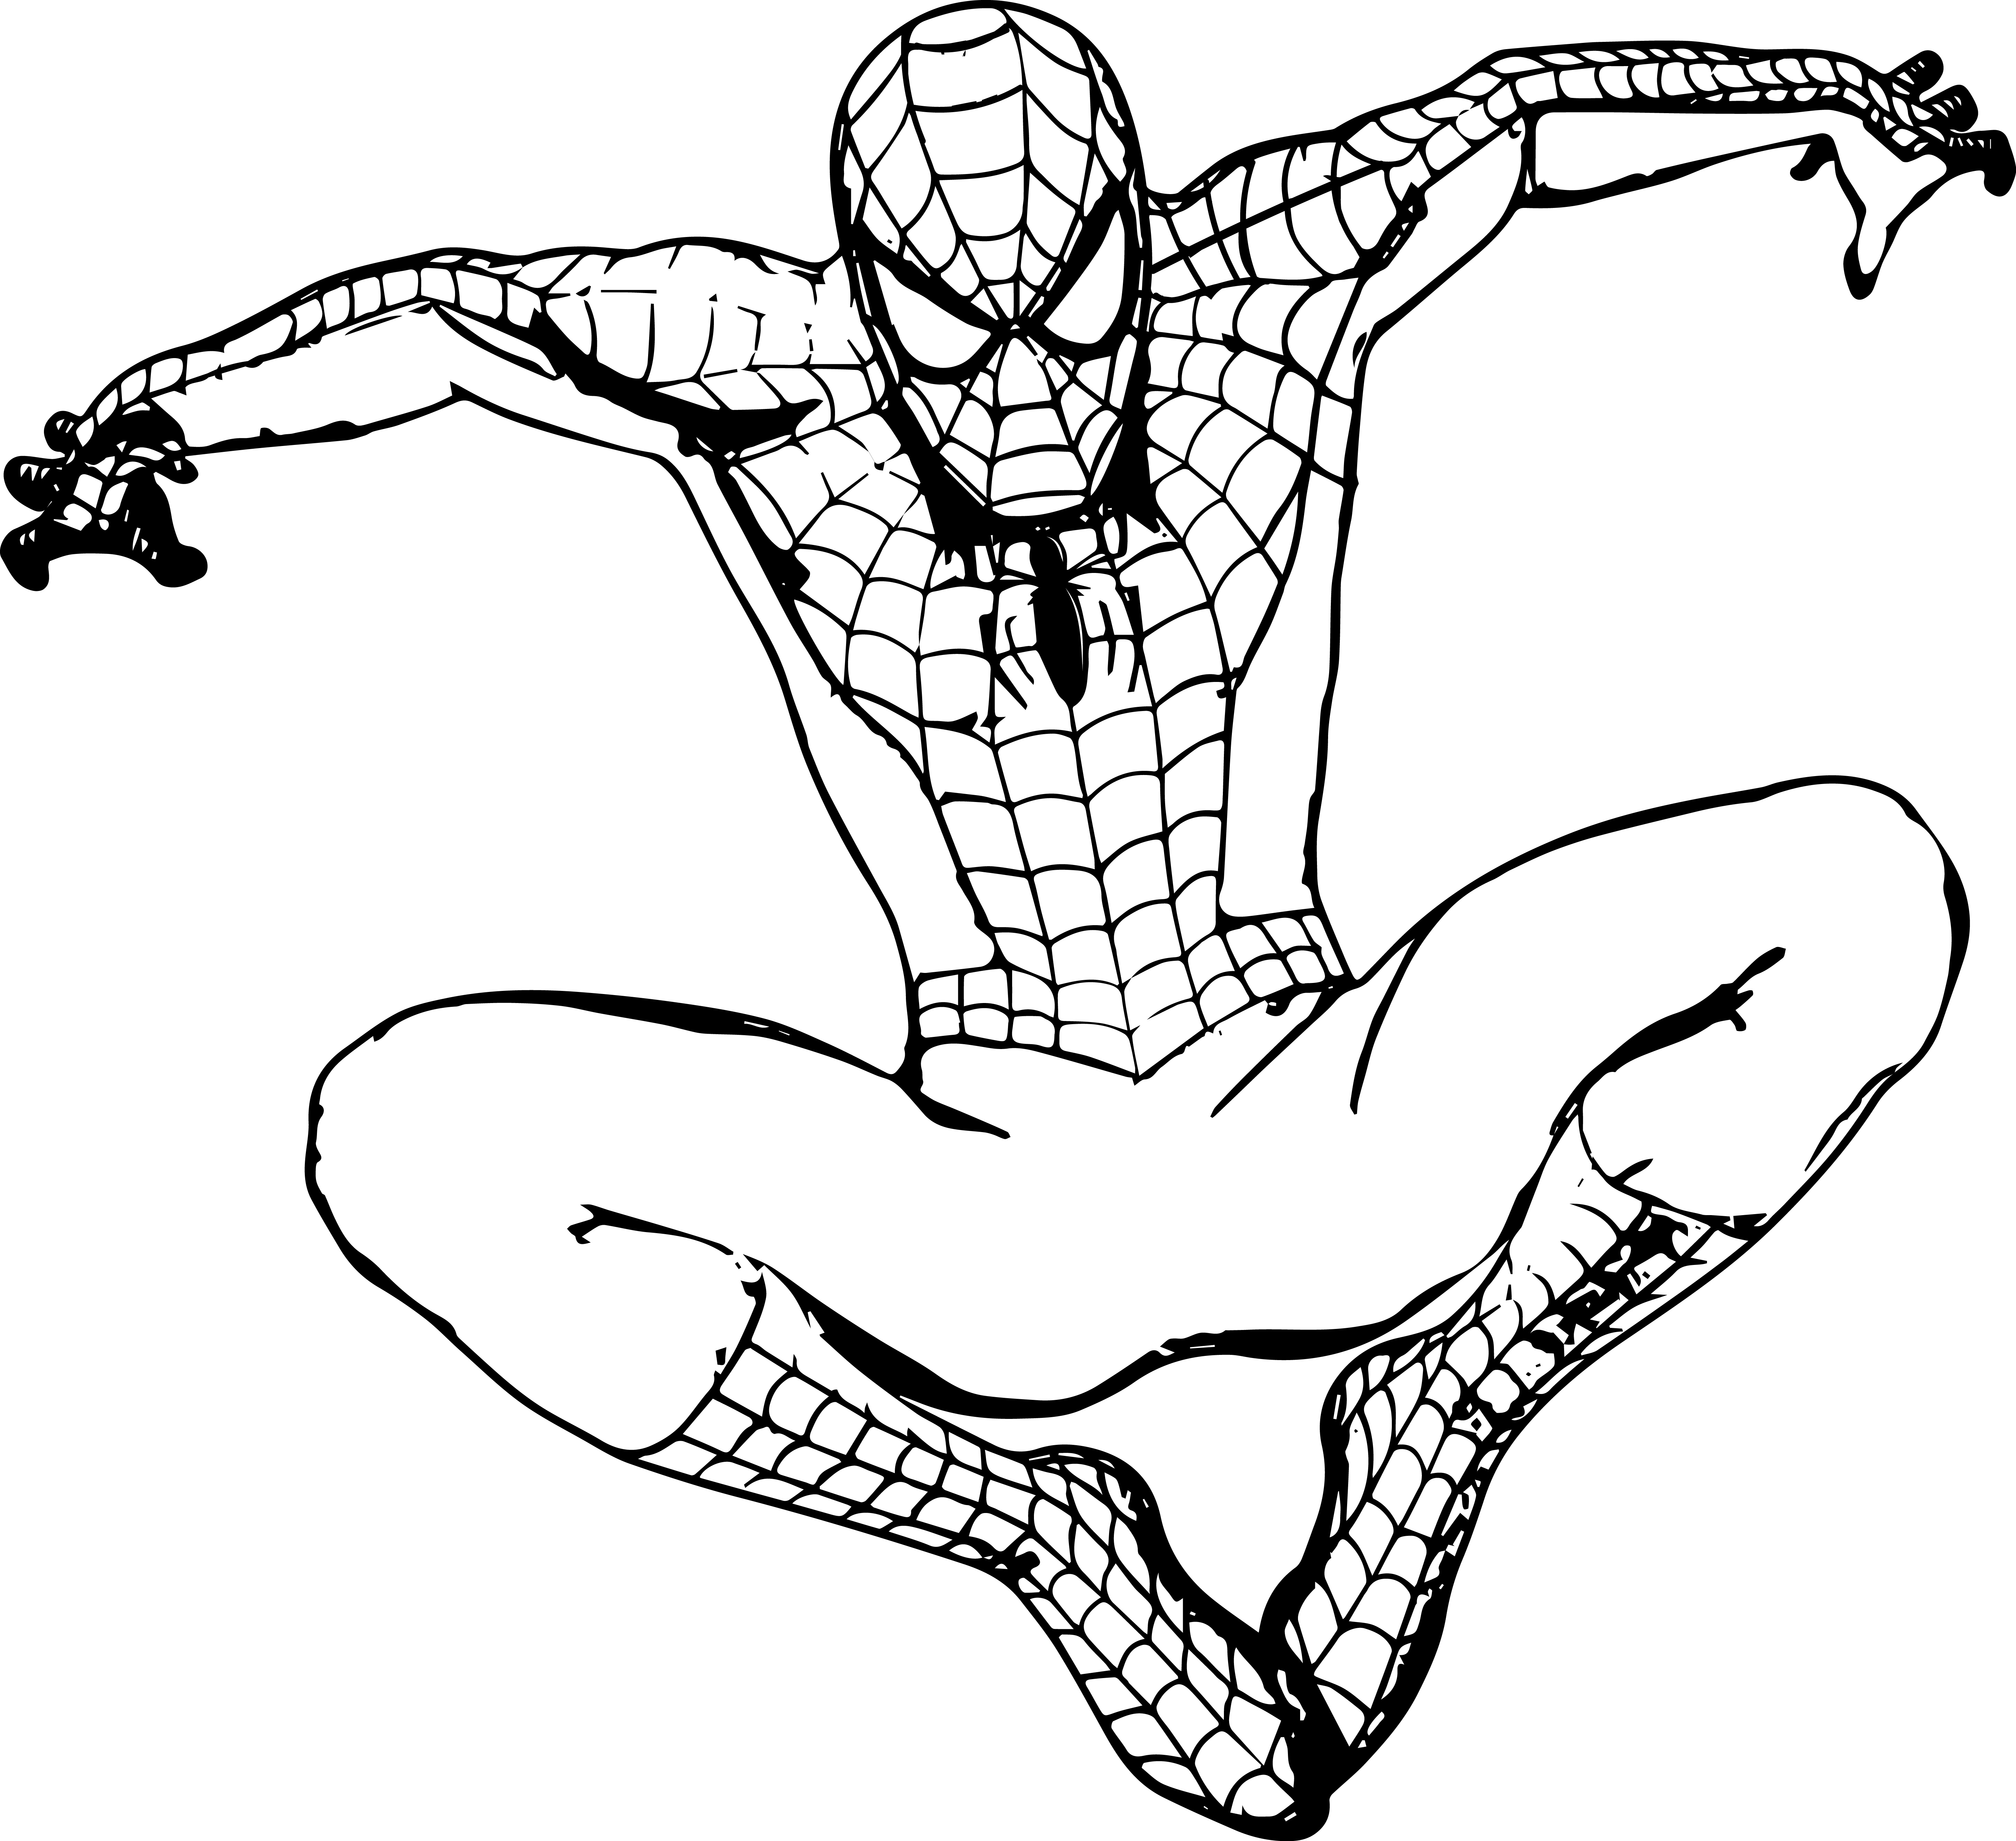 black spiderman coloring black spiderman coloring pages at getcoloringscom free coloring spiderman black